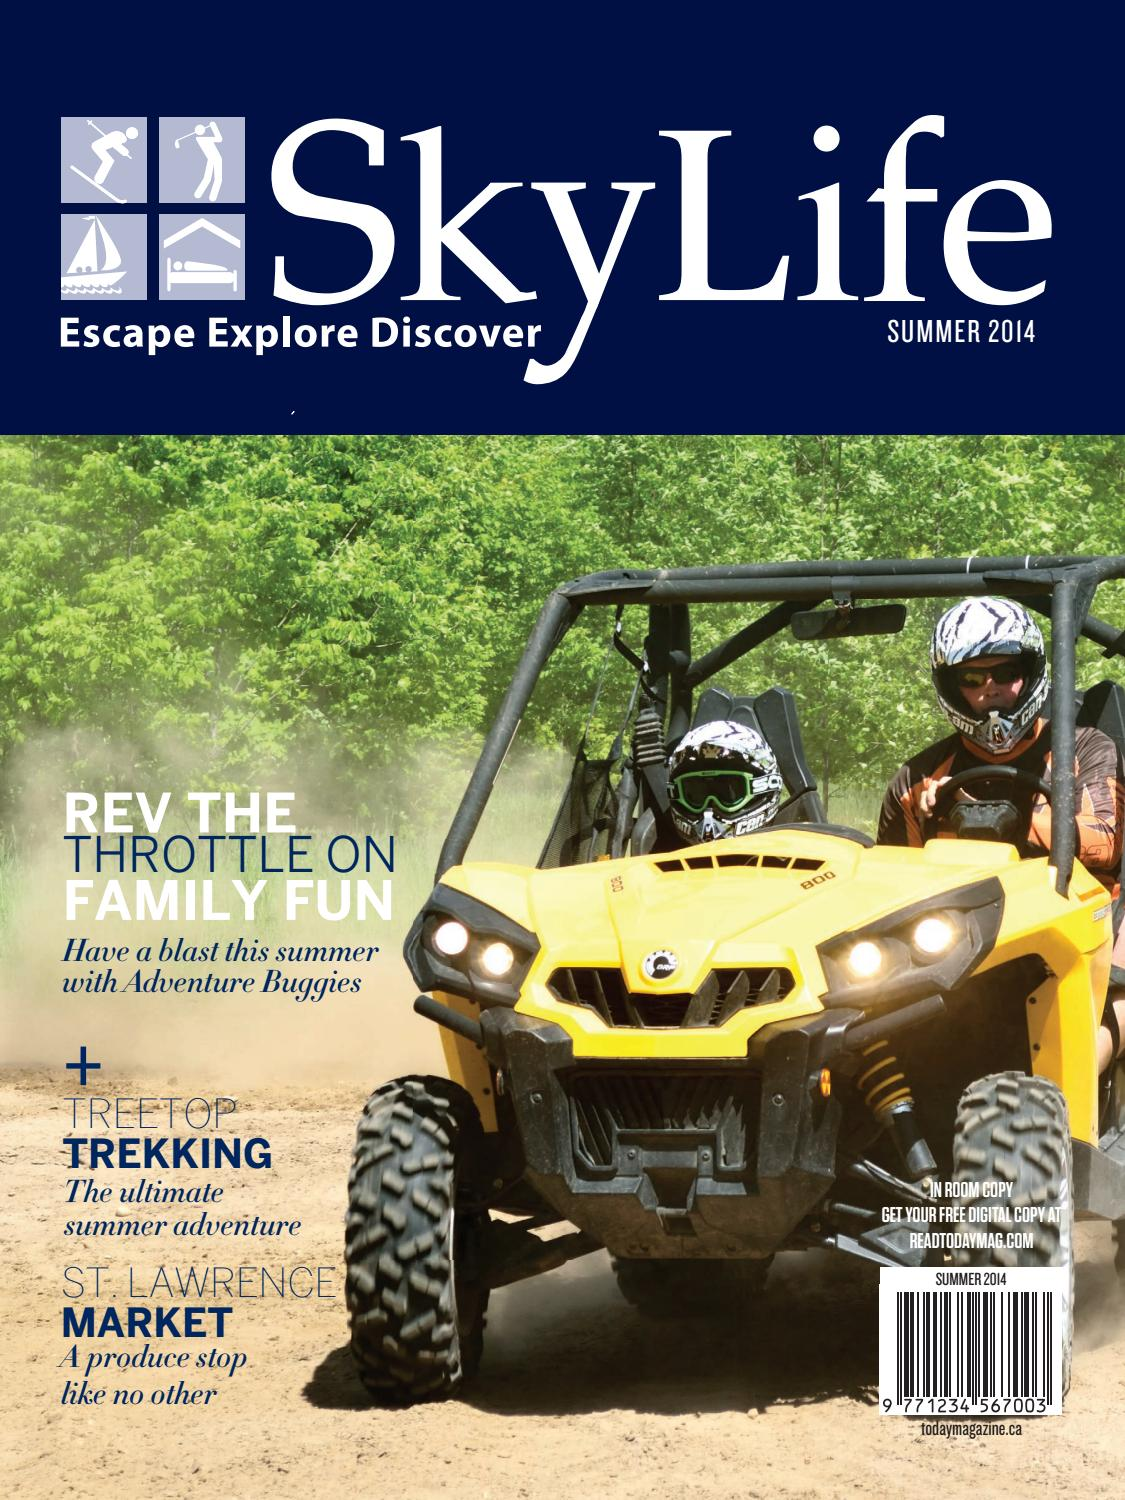 Skylife - Summer 2014 by TodayMagazine - issuu